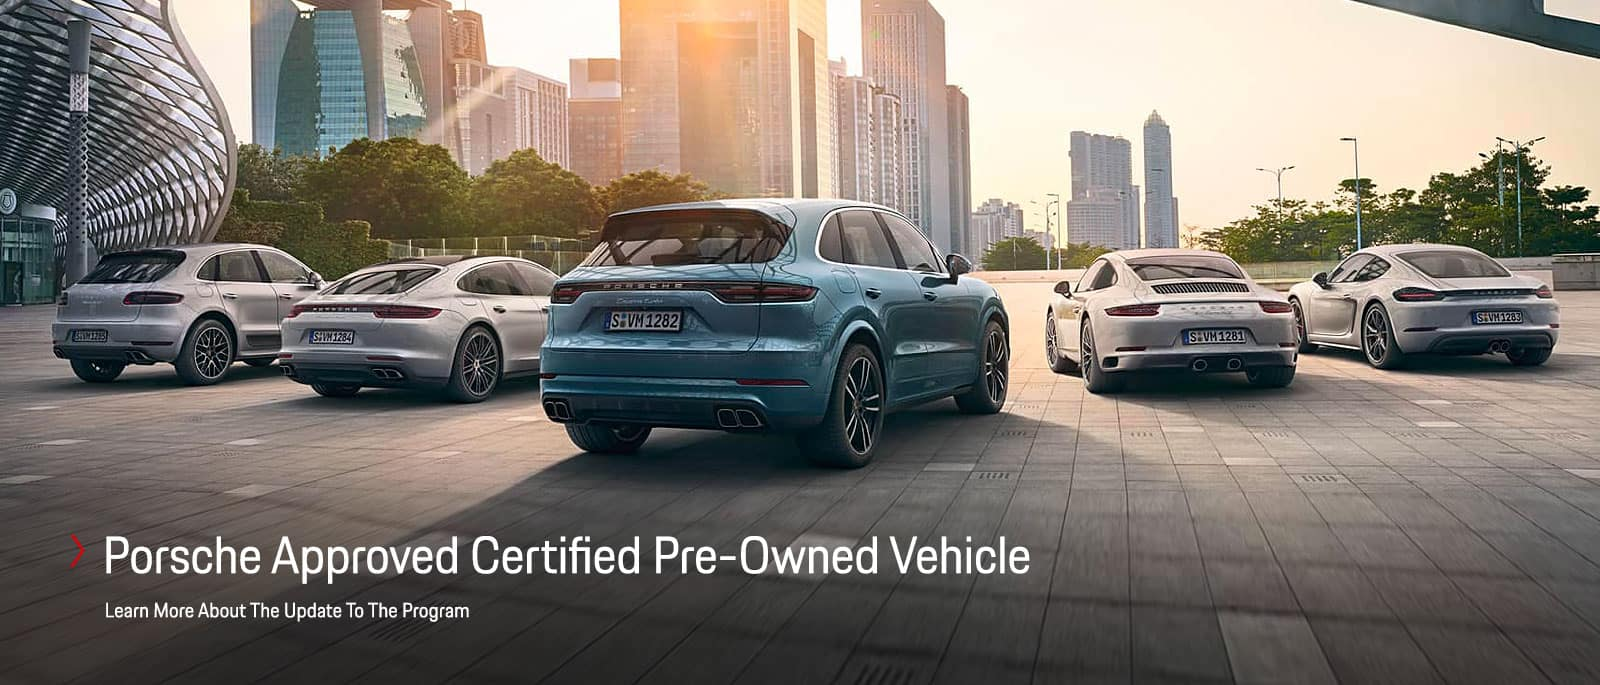 Porsche Approved Certified Program